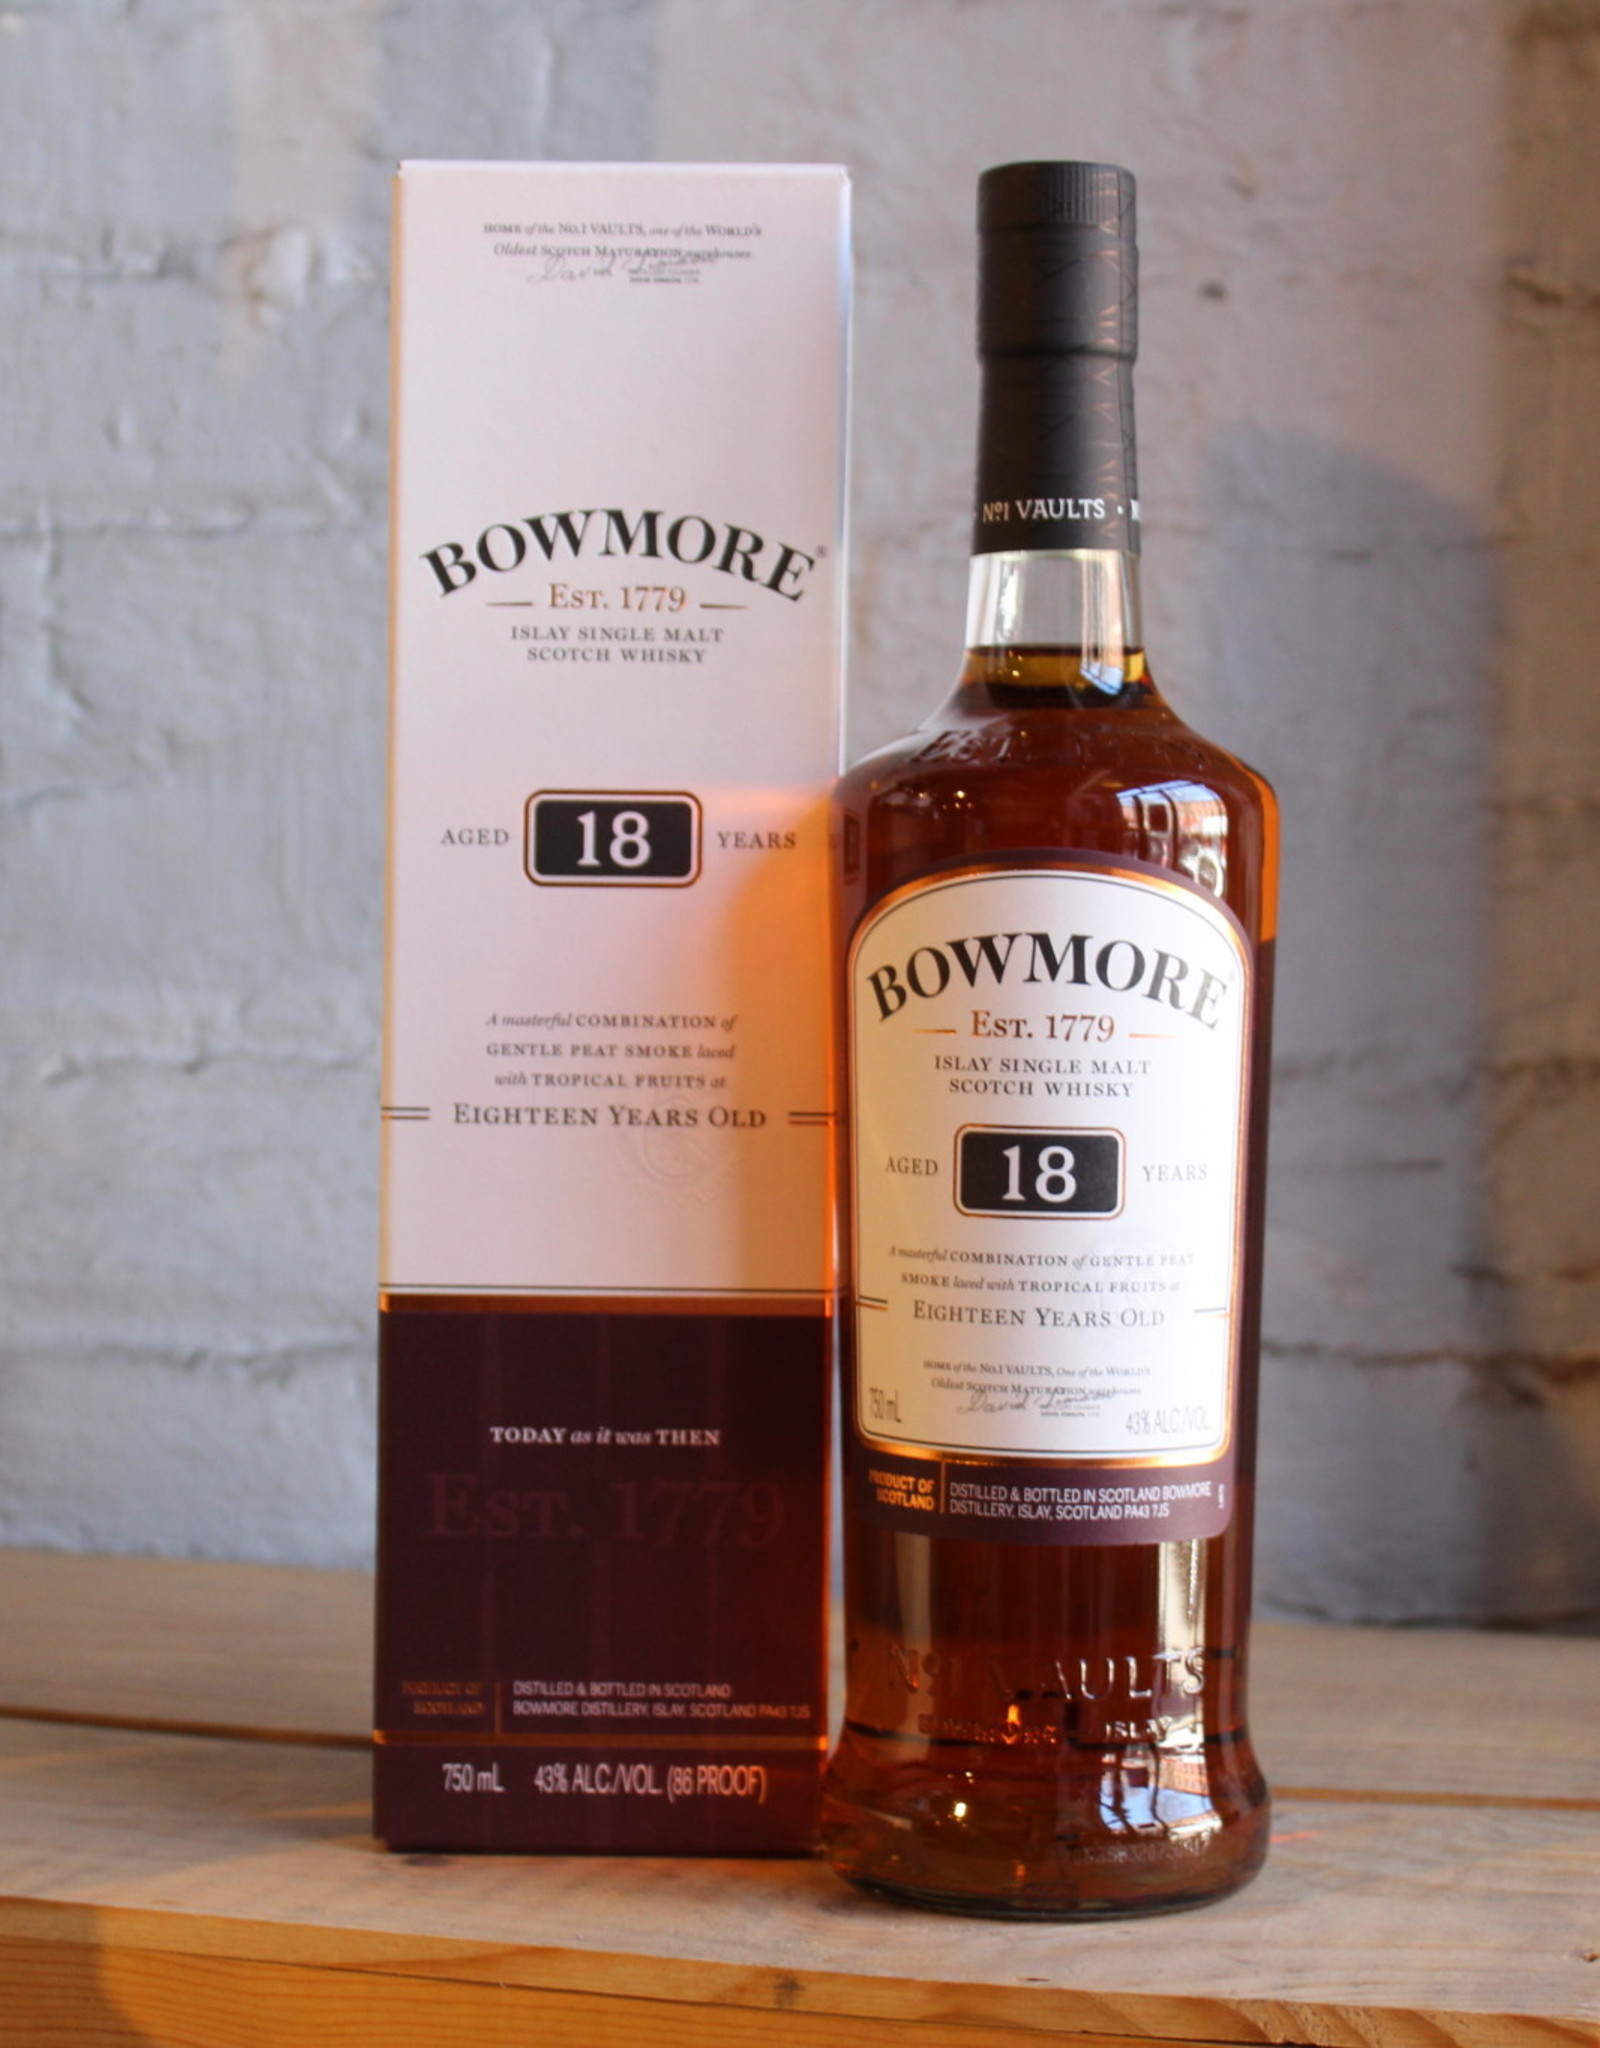 Bowmore 18yr Single Malt Scotch Whisky - Islay, Scotland (750ml)